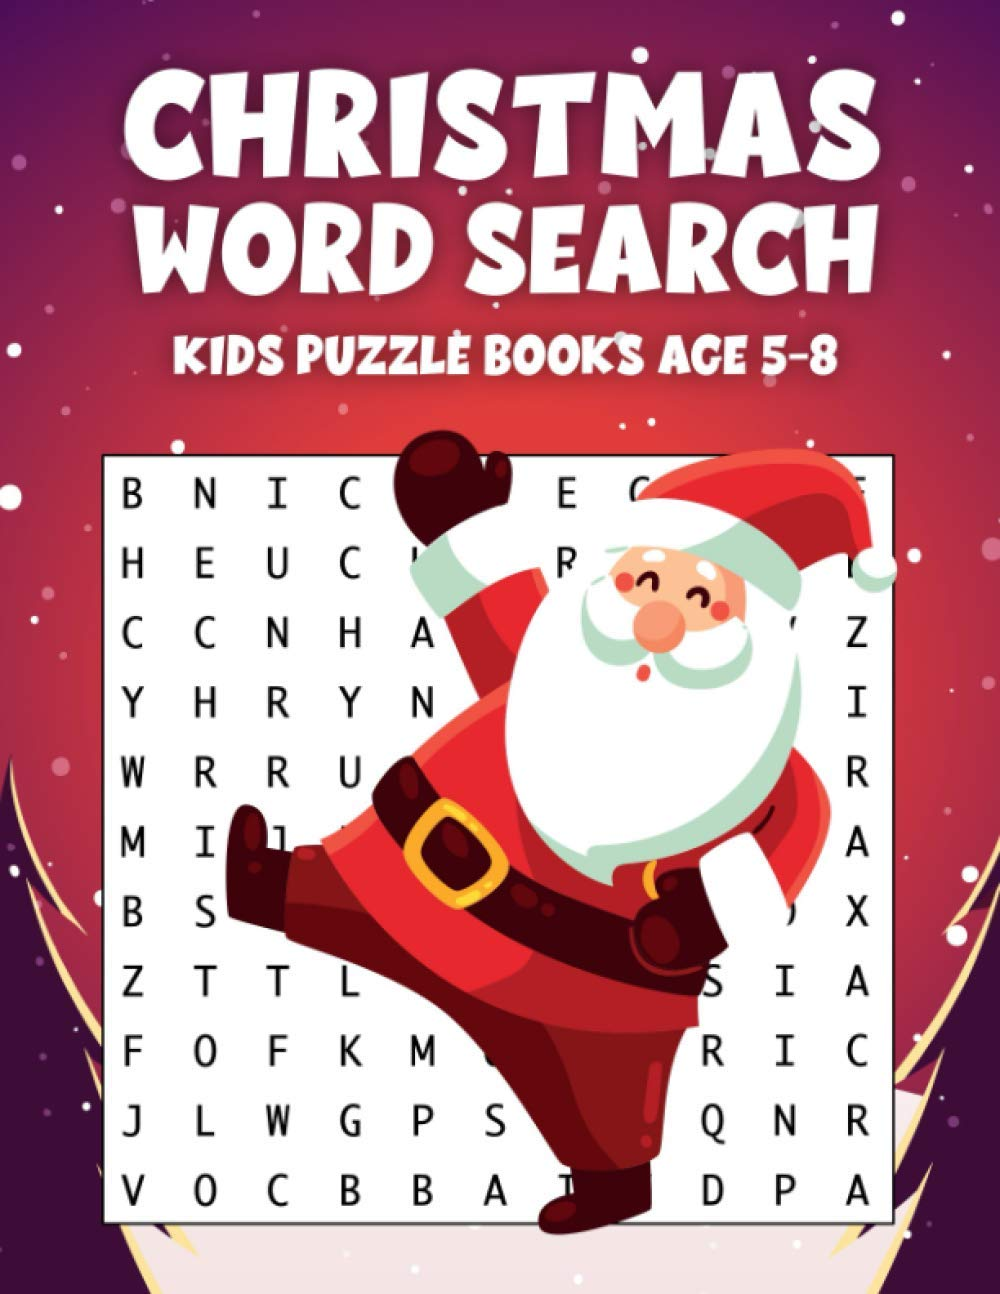 Kids Word Search Books Age 5-8 Christmas: Holiday Fun & Brain Exercise with Challenging Word Games | Large Print | Beginner Children with Colouring And Activity Pictures!